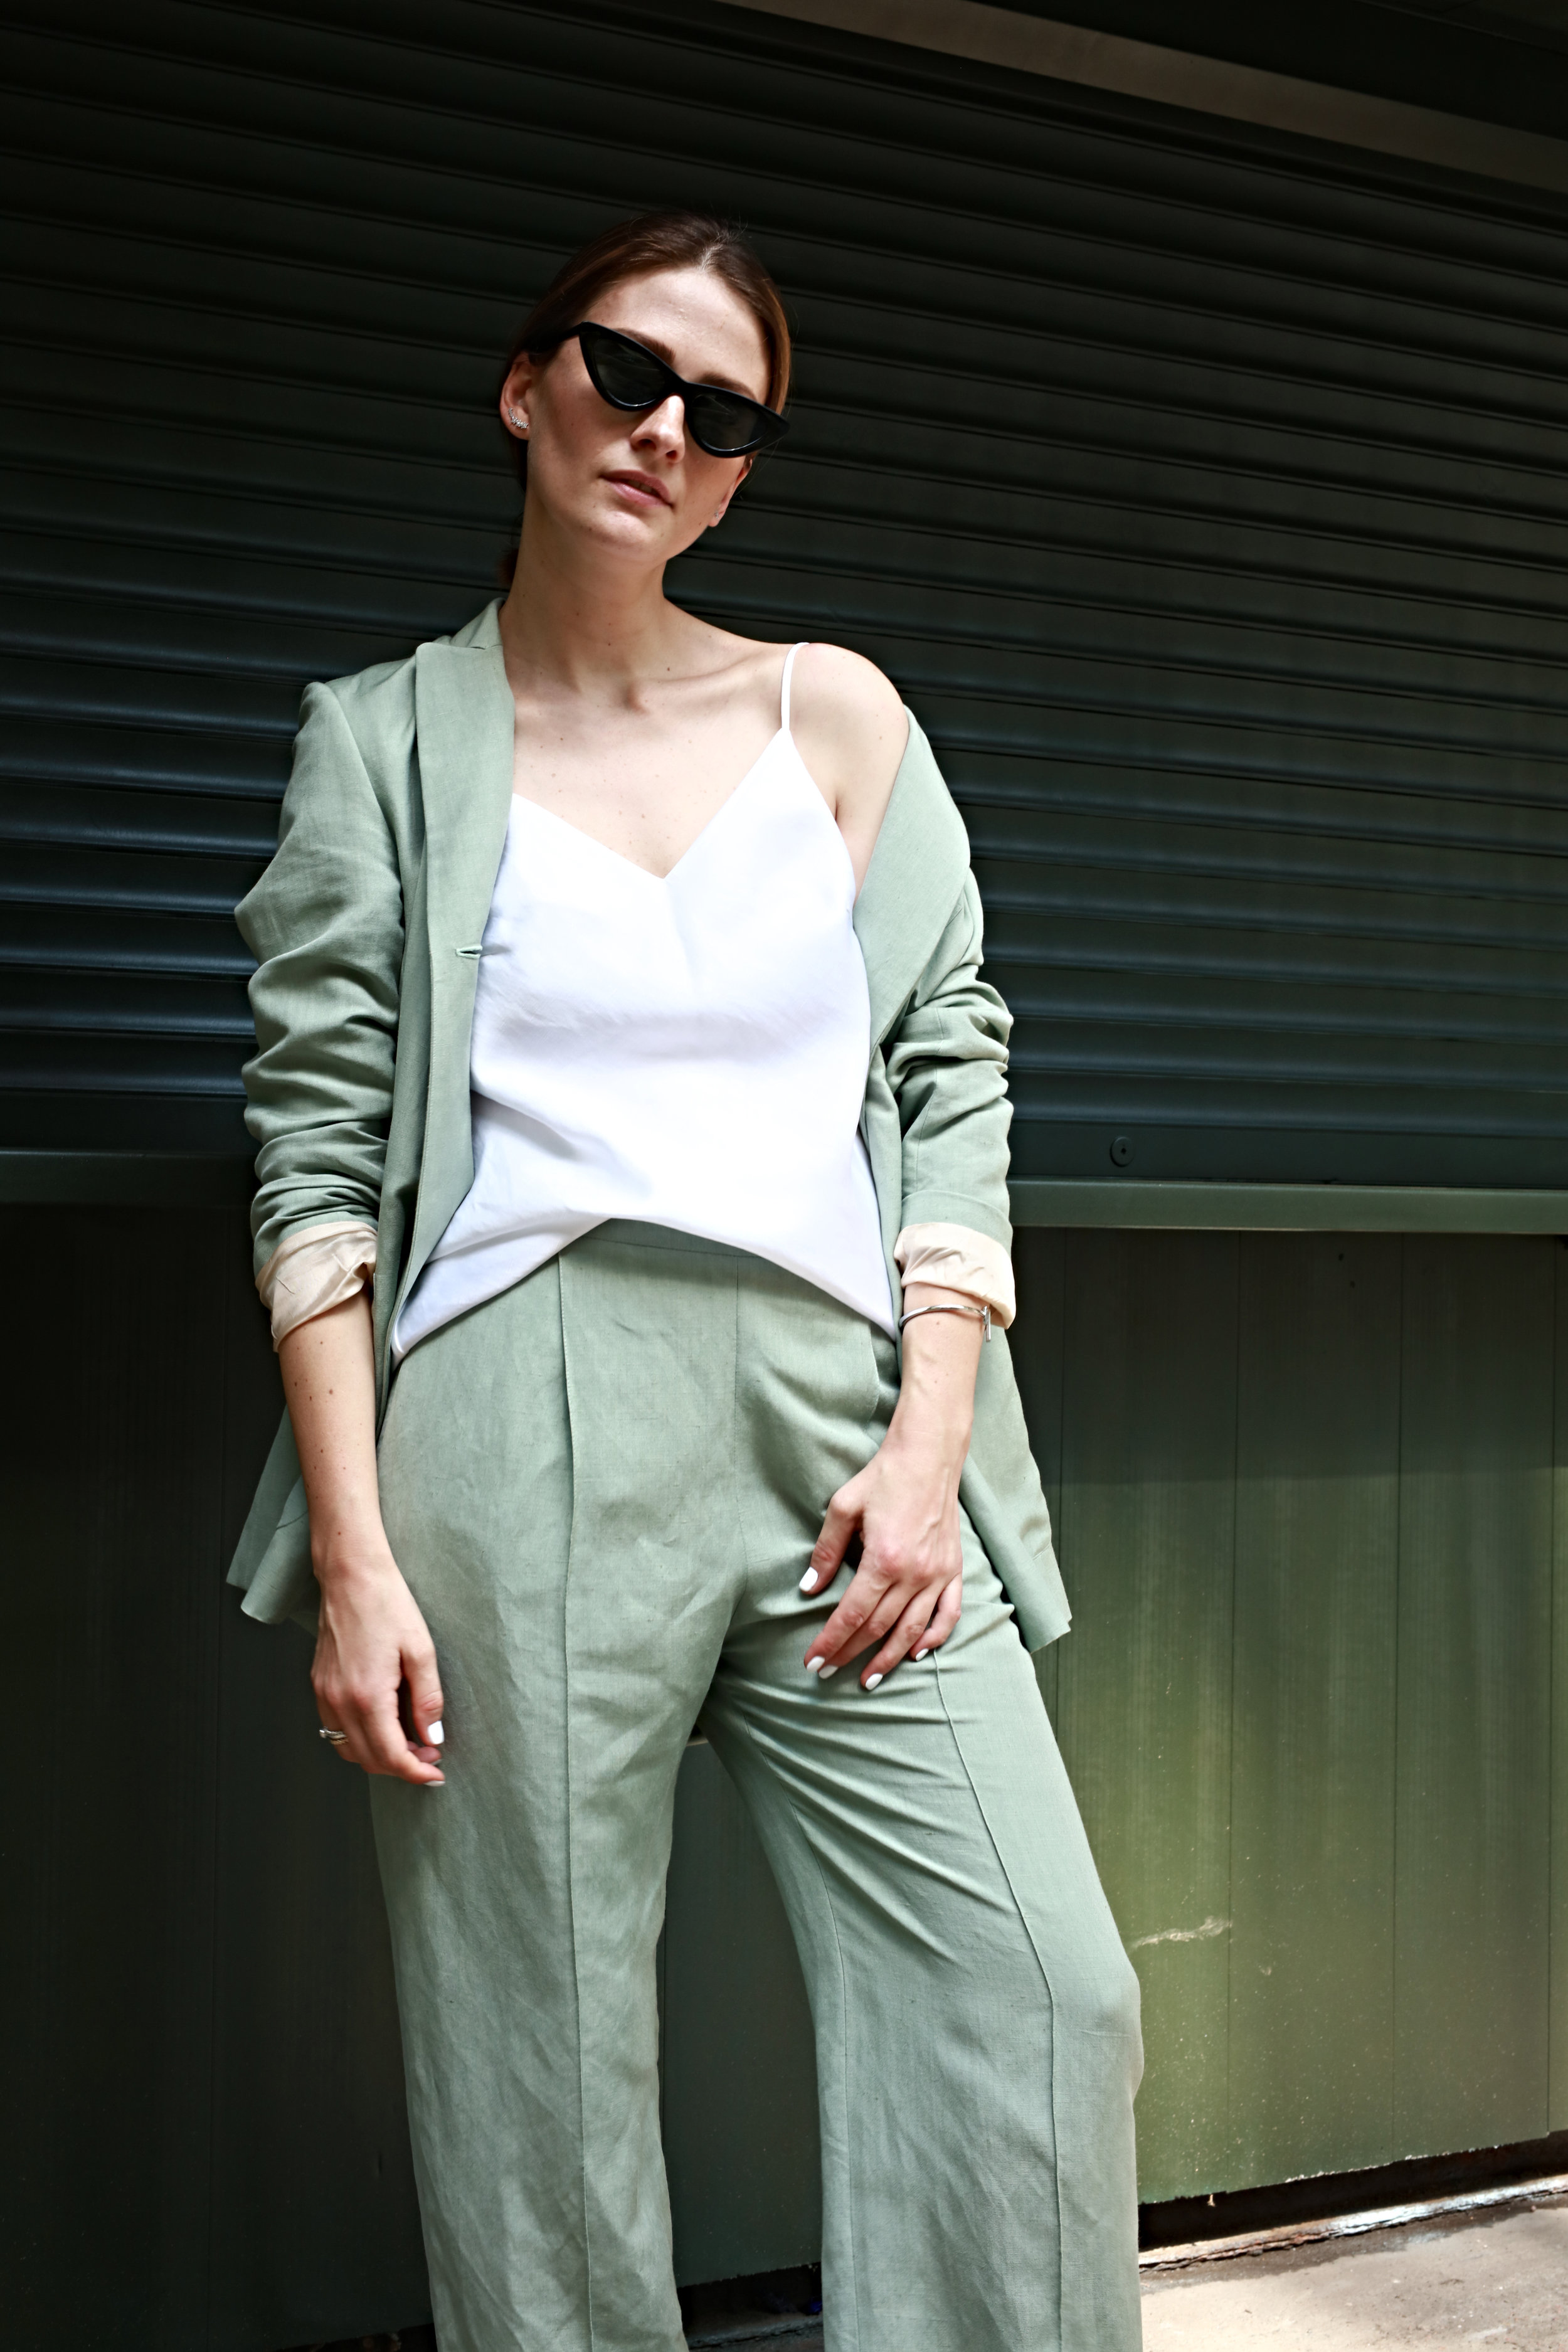 annaporter-linen-jacket-trousers-outfit-fashion-blogger-katimo